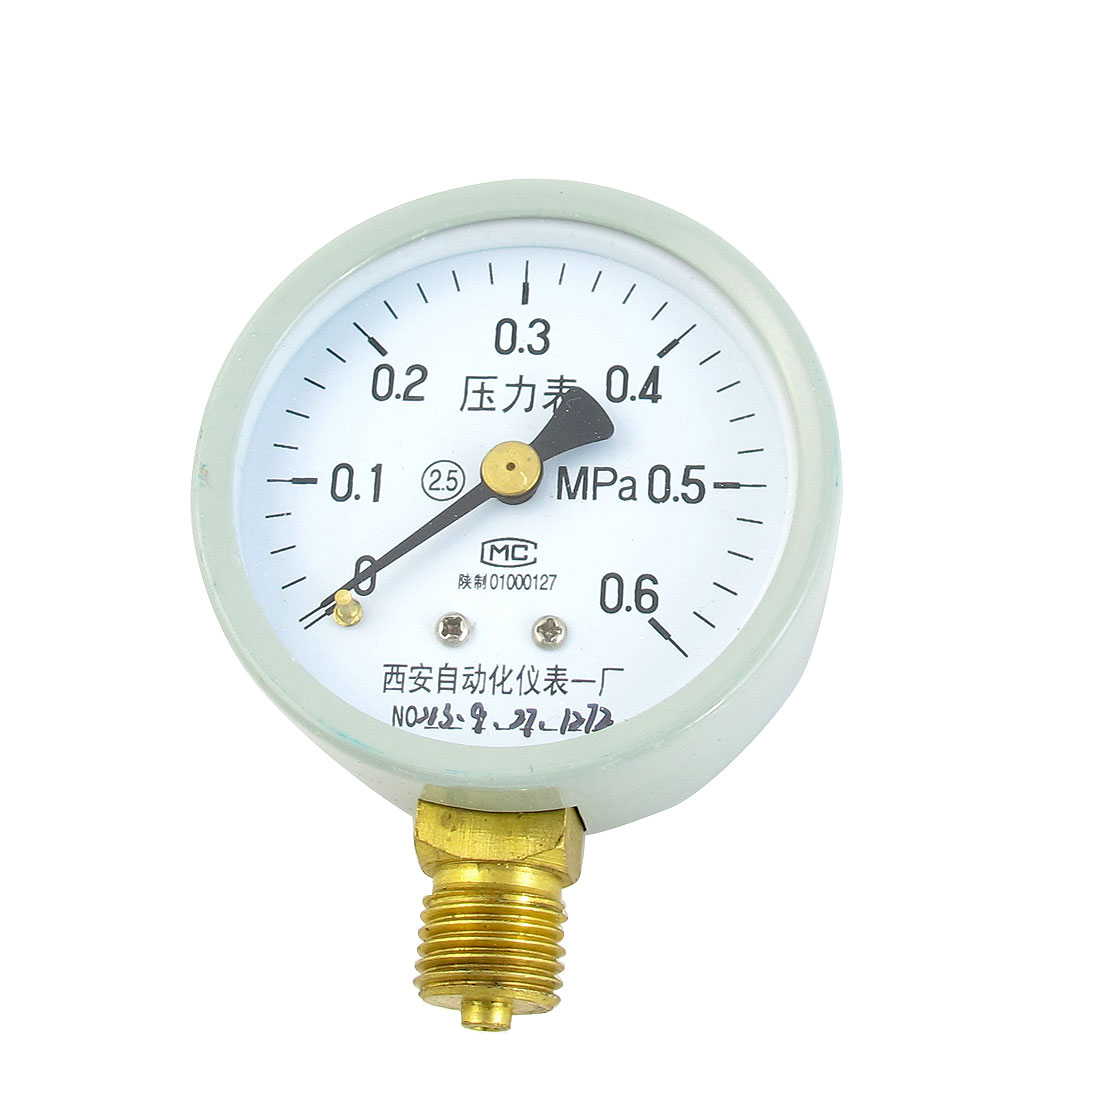 1/4PT Male Threaded 0-0.6Mpa Pneumatic Air Pressure Measuring Gauge Light Gray